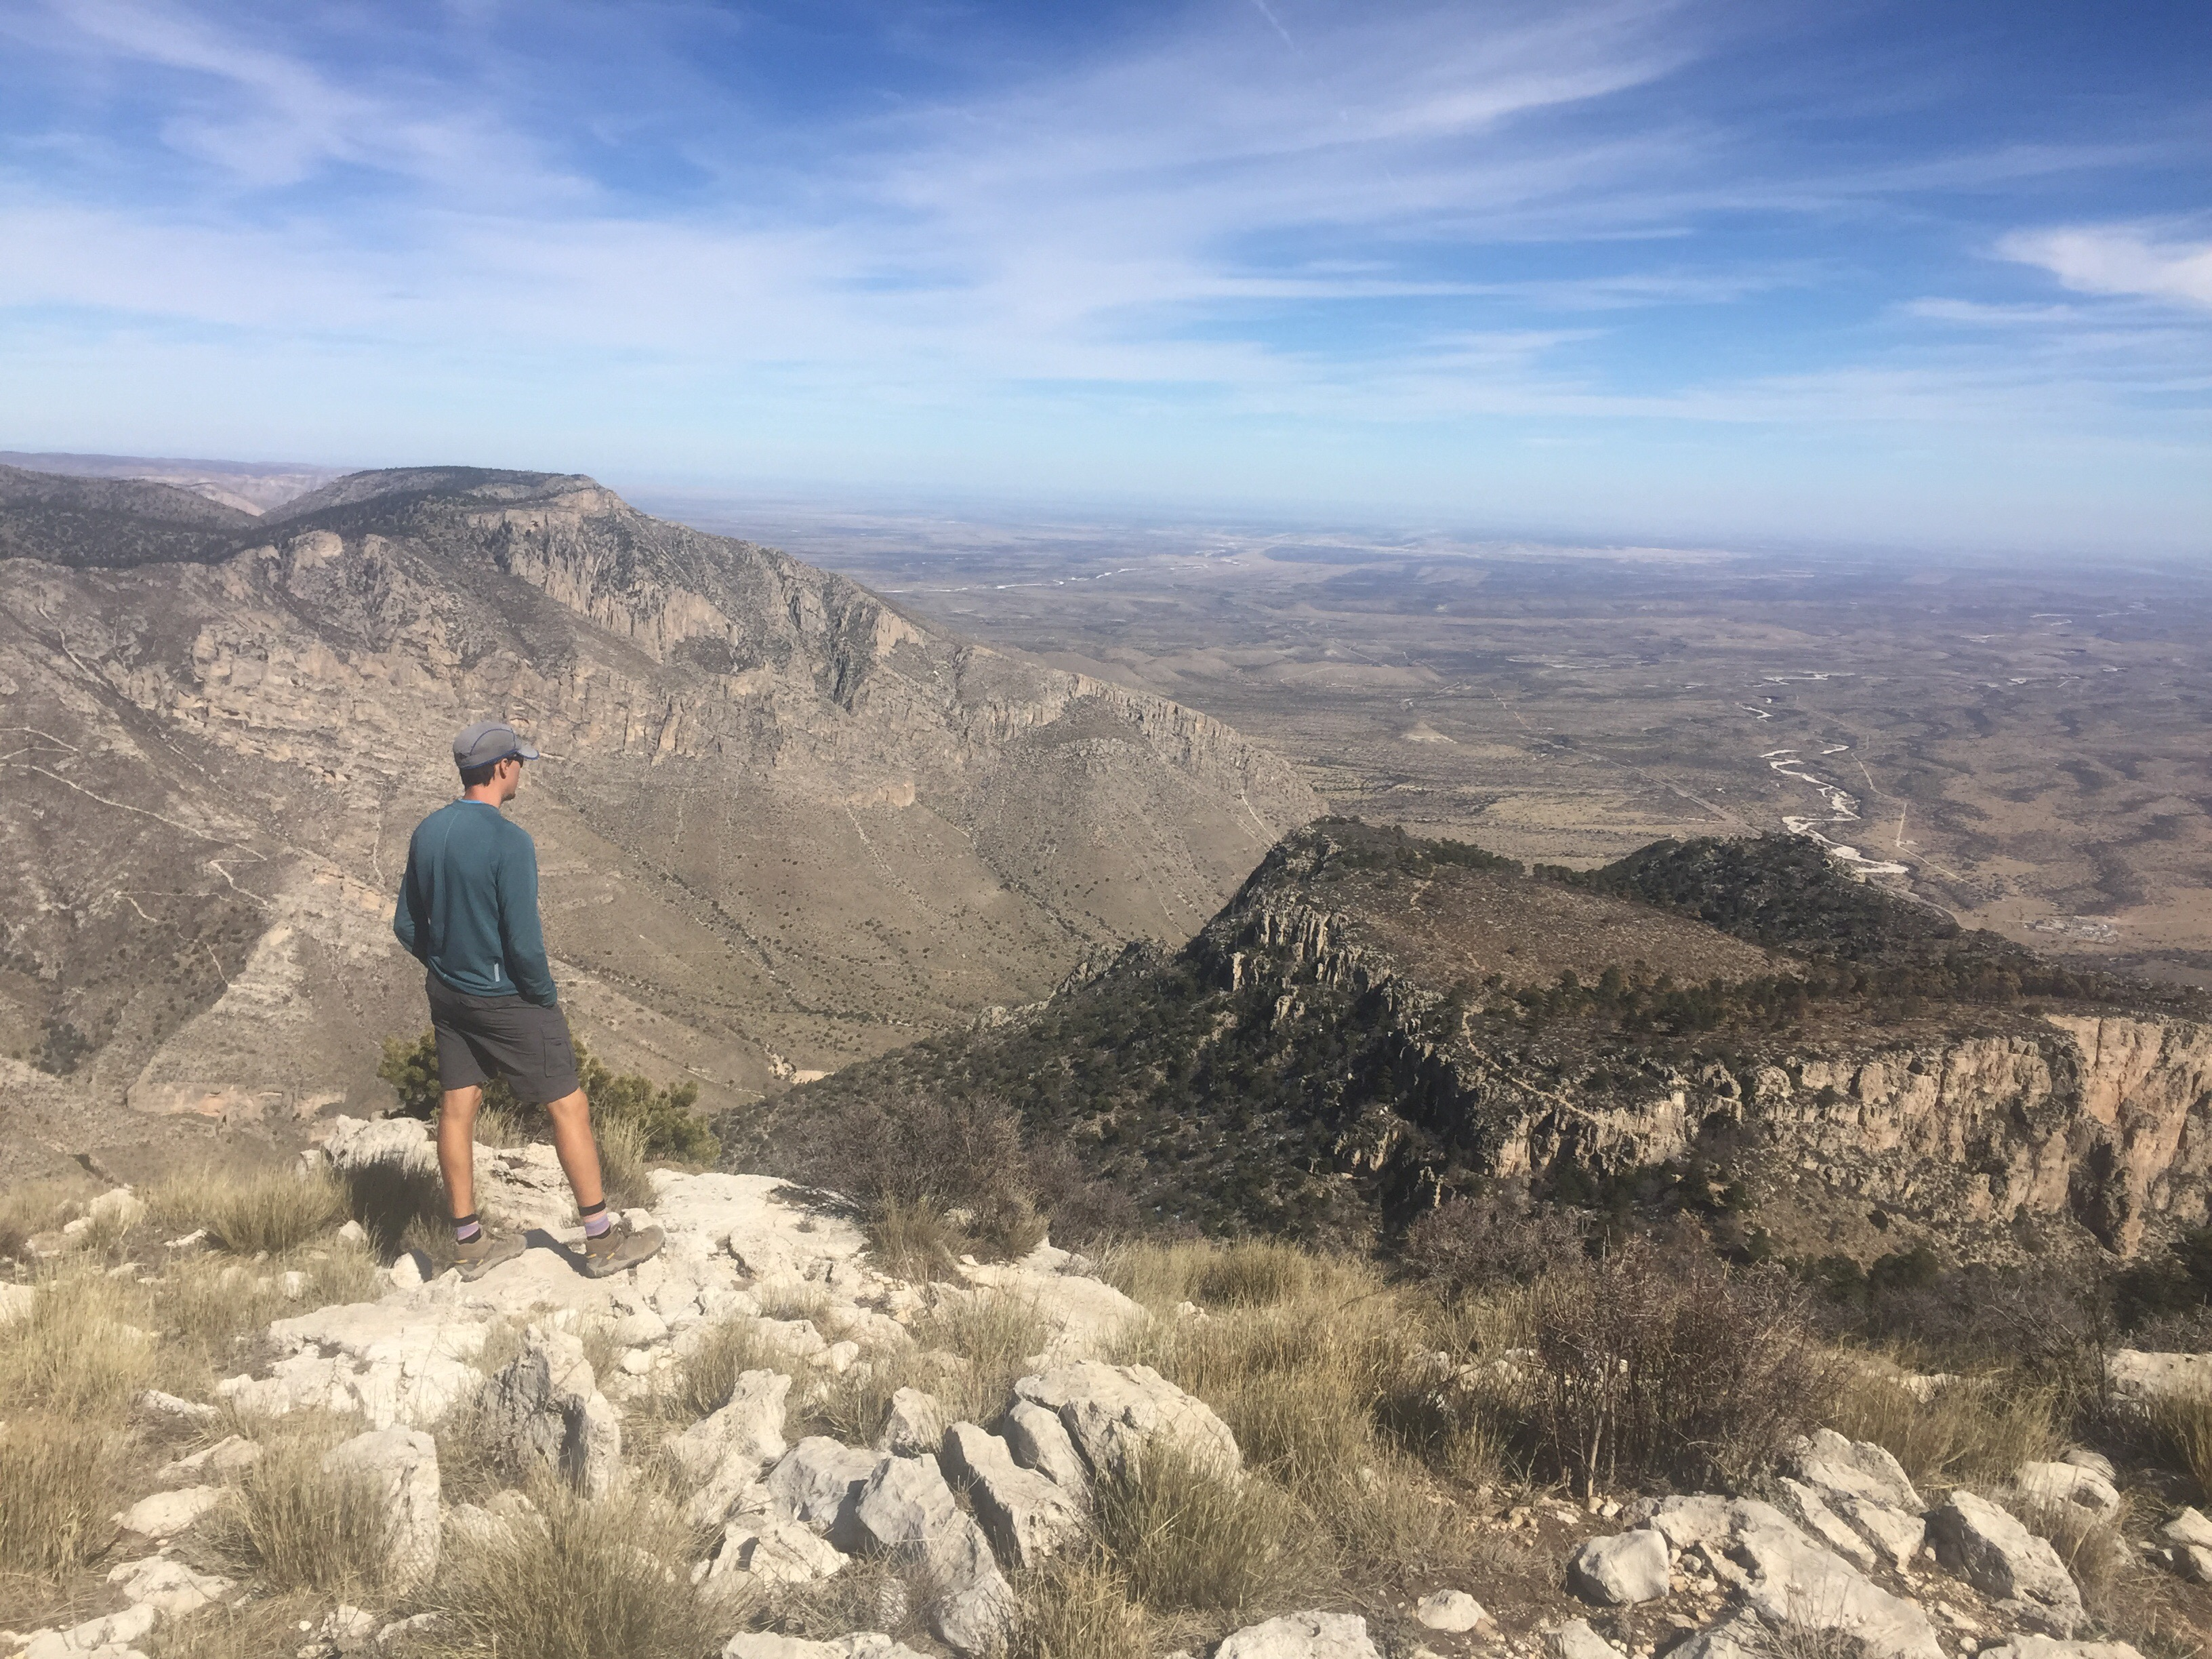 VIDEO: Guadalupe Mountains National Park